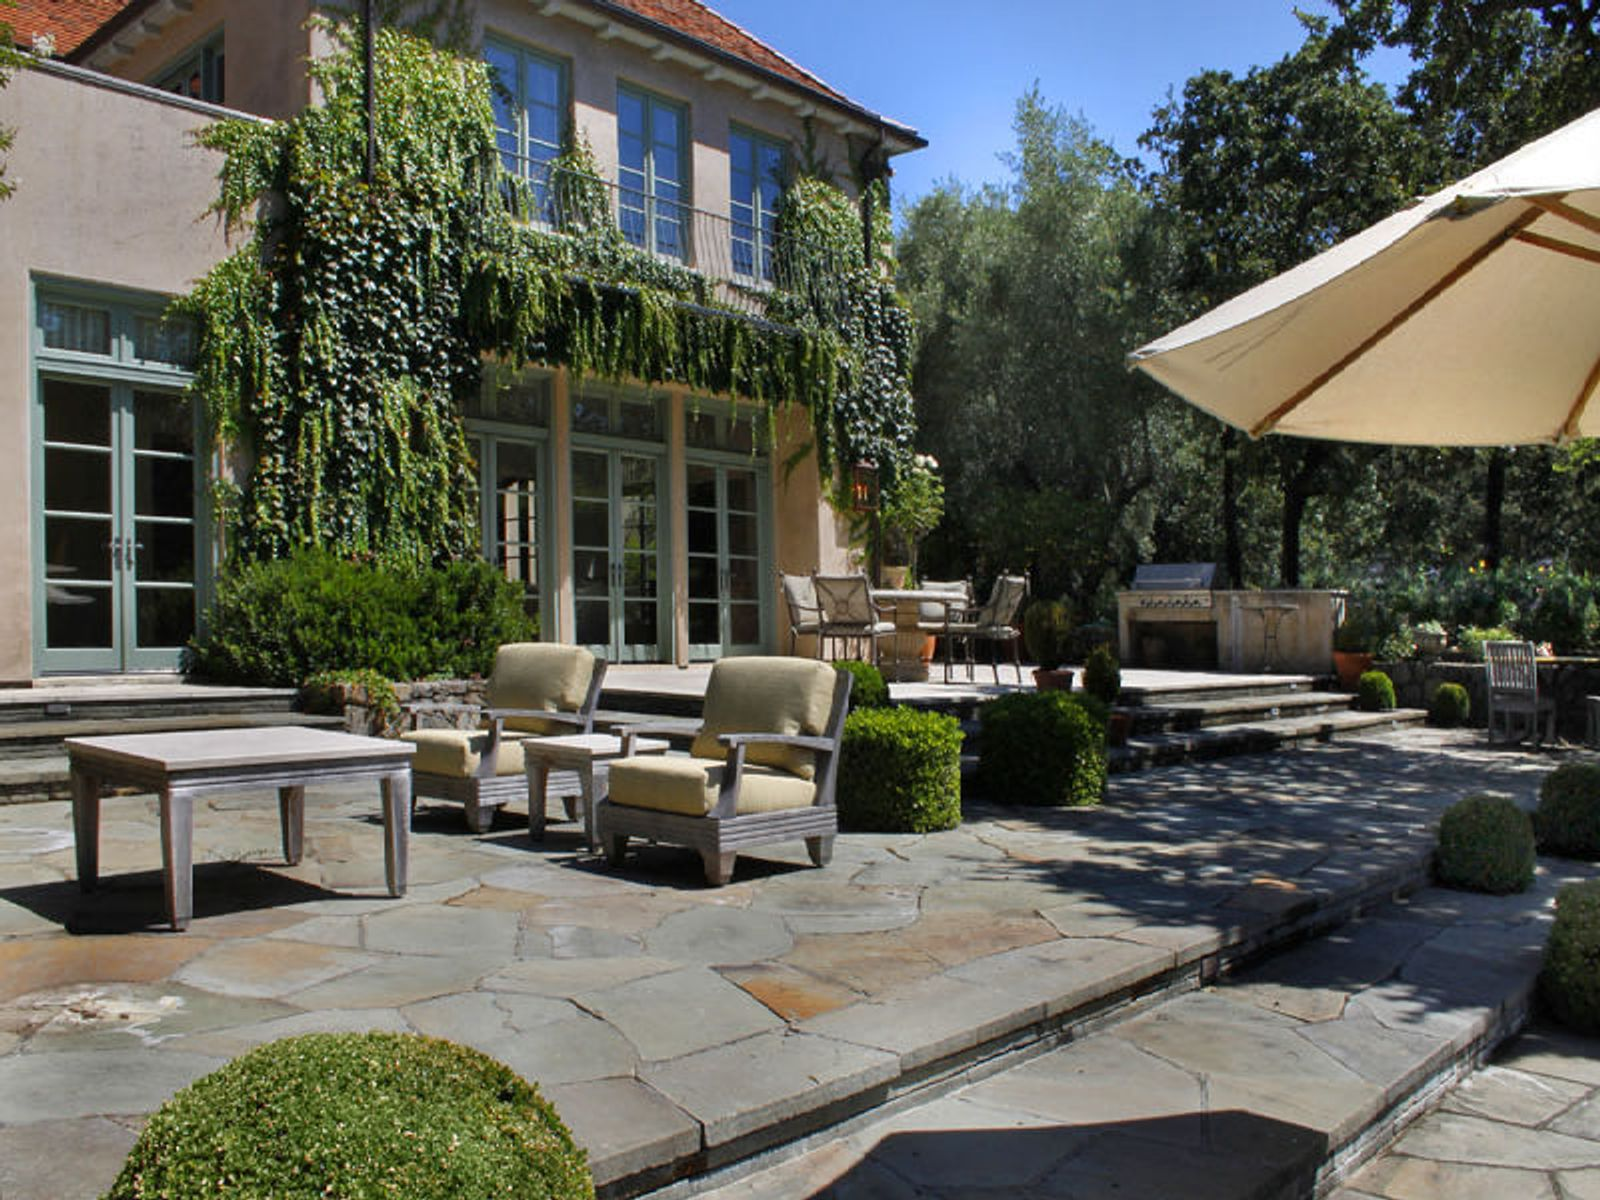 Winery Terrace Estate